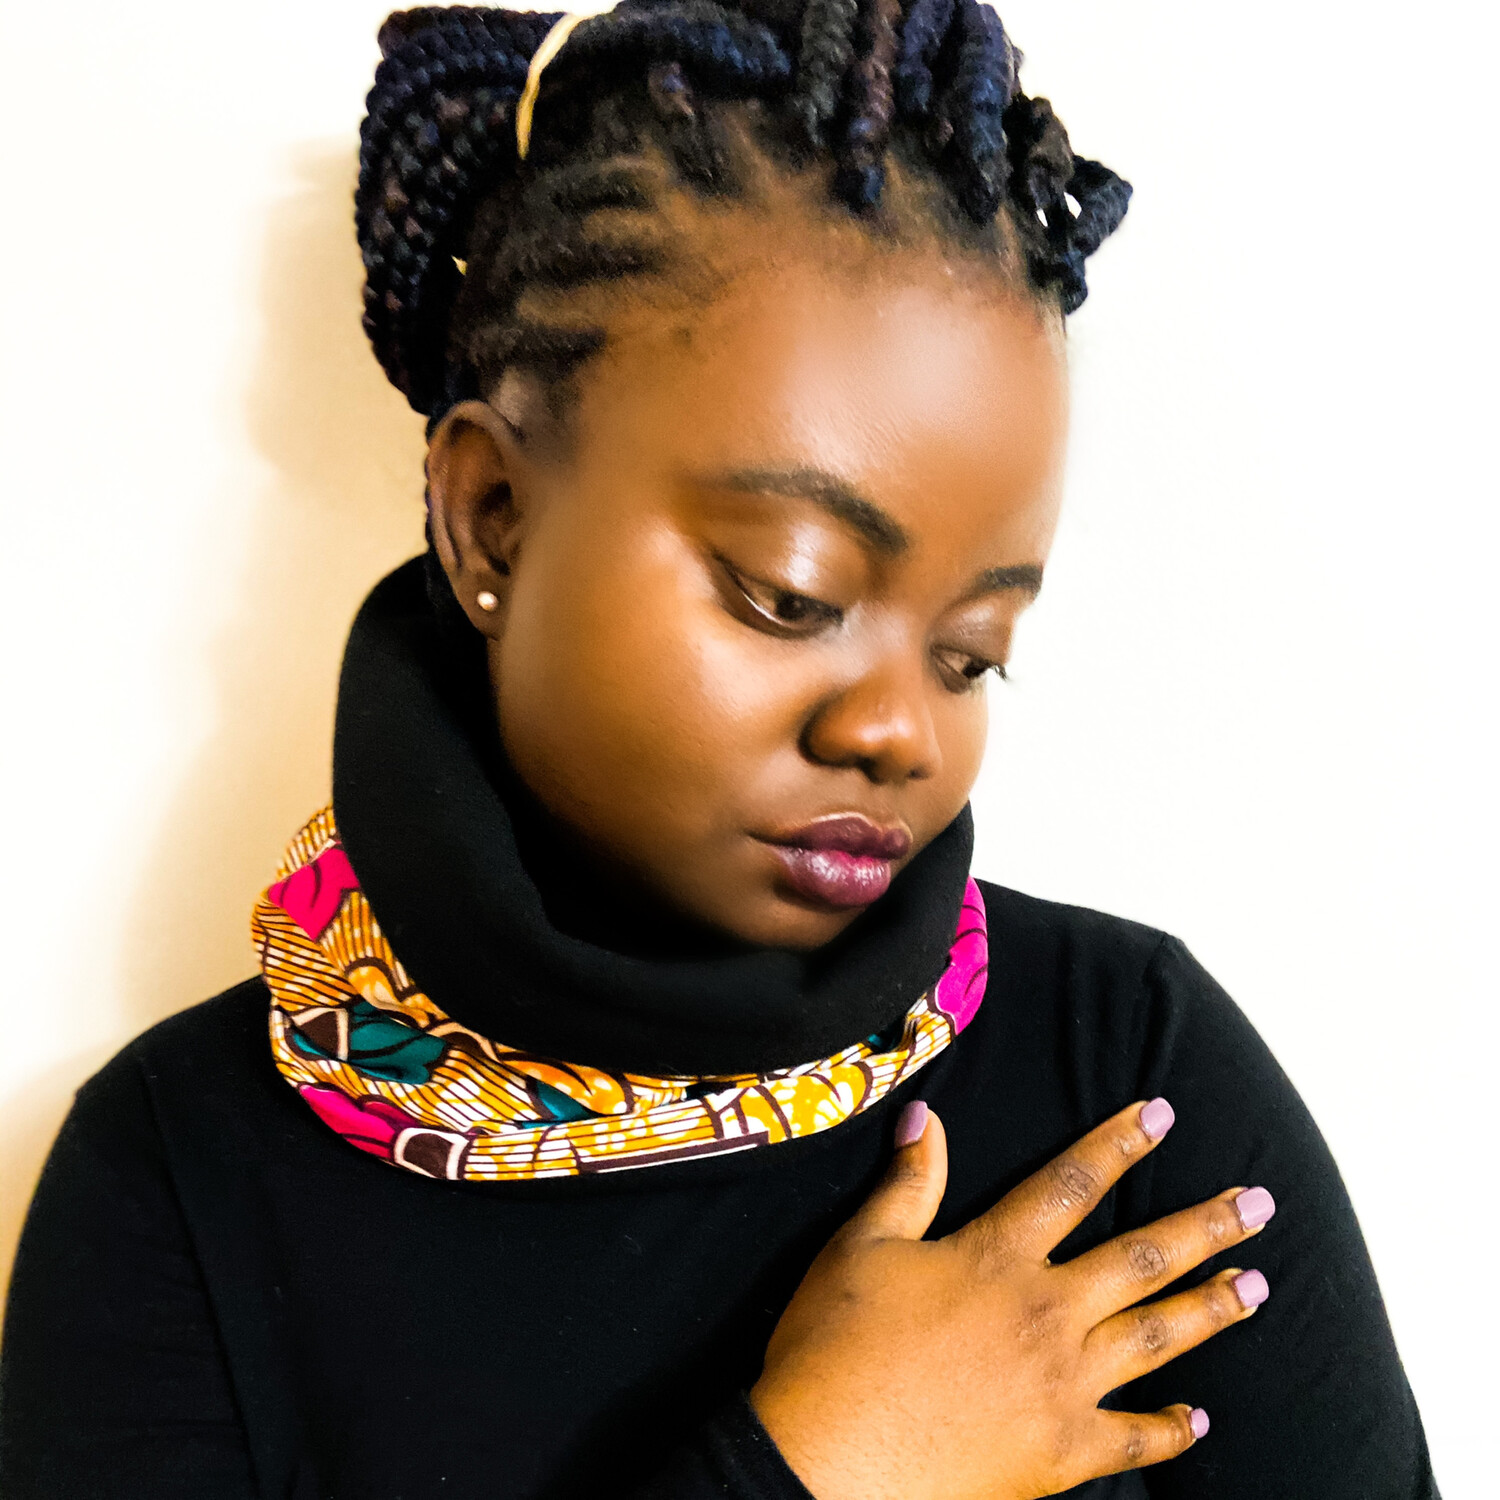 Arewa African Print Snood Scarf